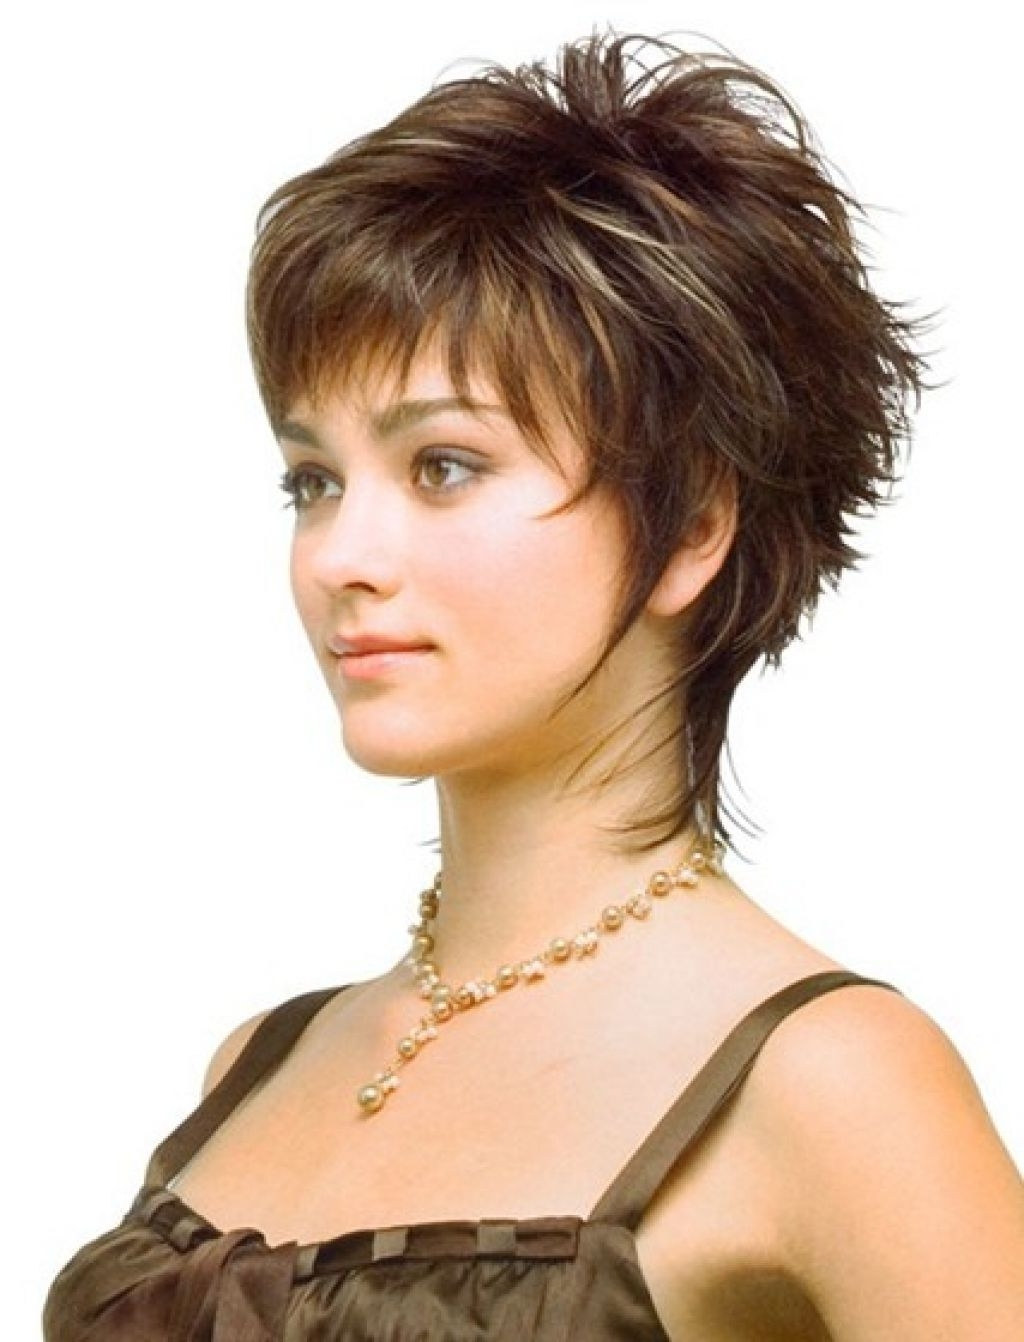 Epic Short Shaggy Hairstyles For Fine Hair 30 Ideas With Short Throughout Most Popular Short Shaggy Hairstyles Thin Hair (Gallery 7 of 15)